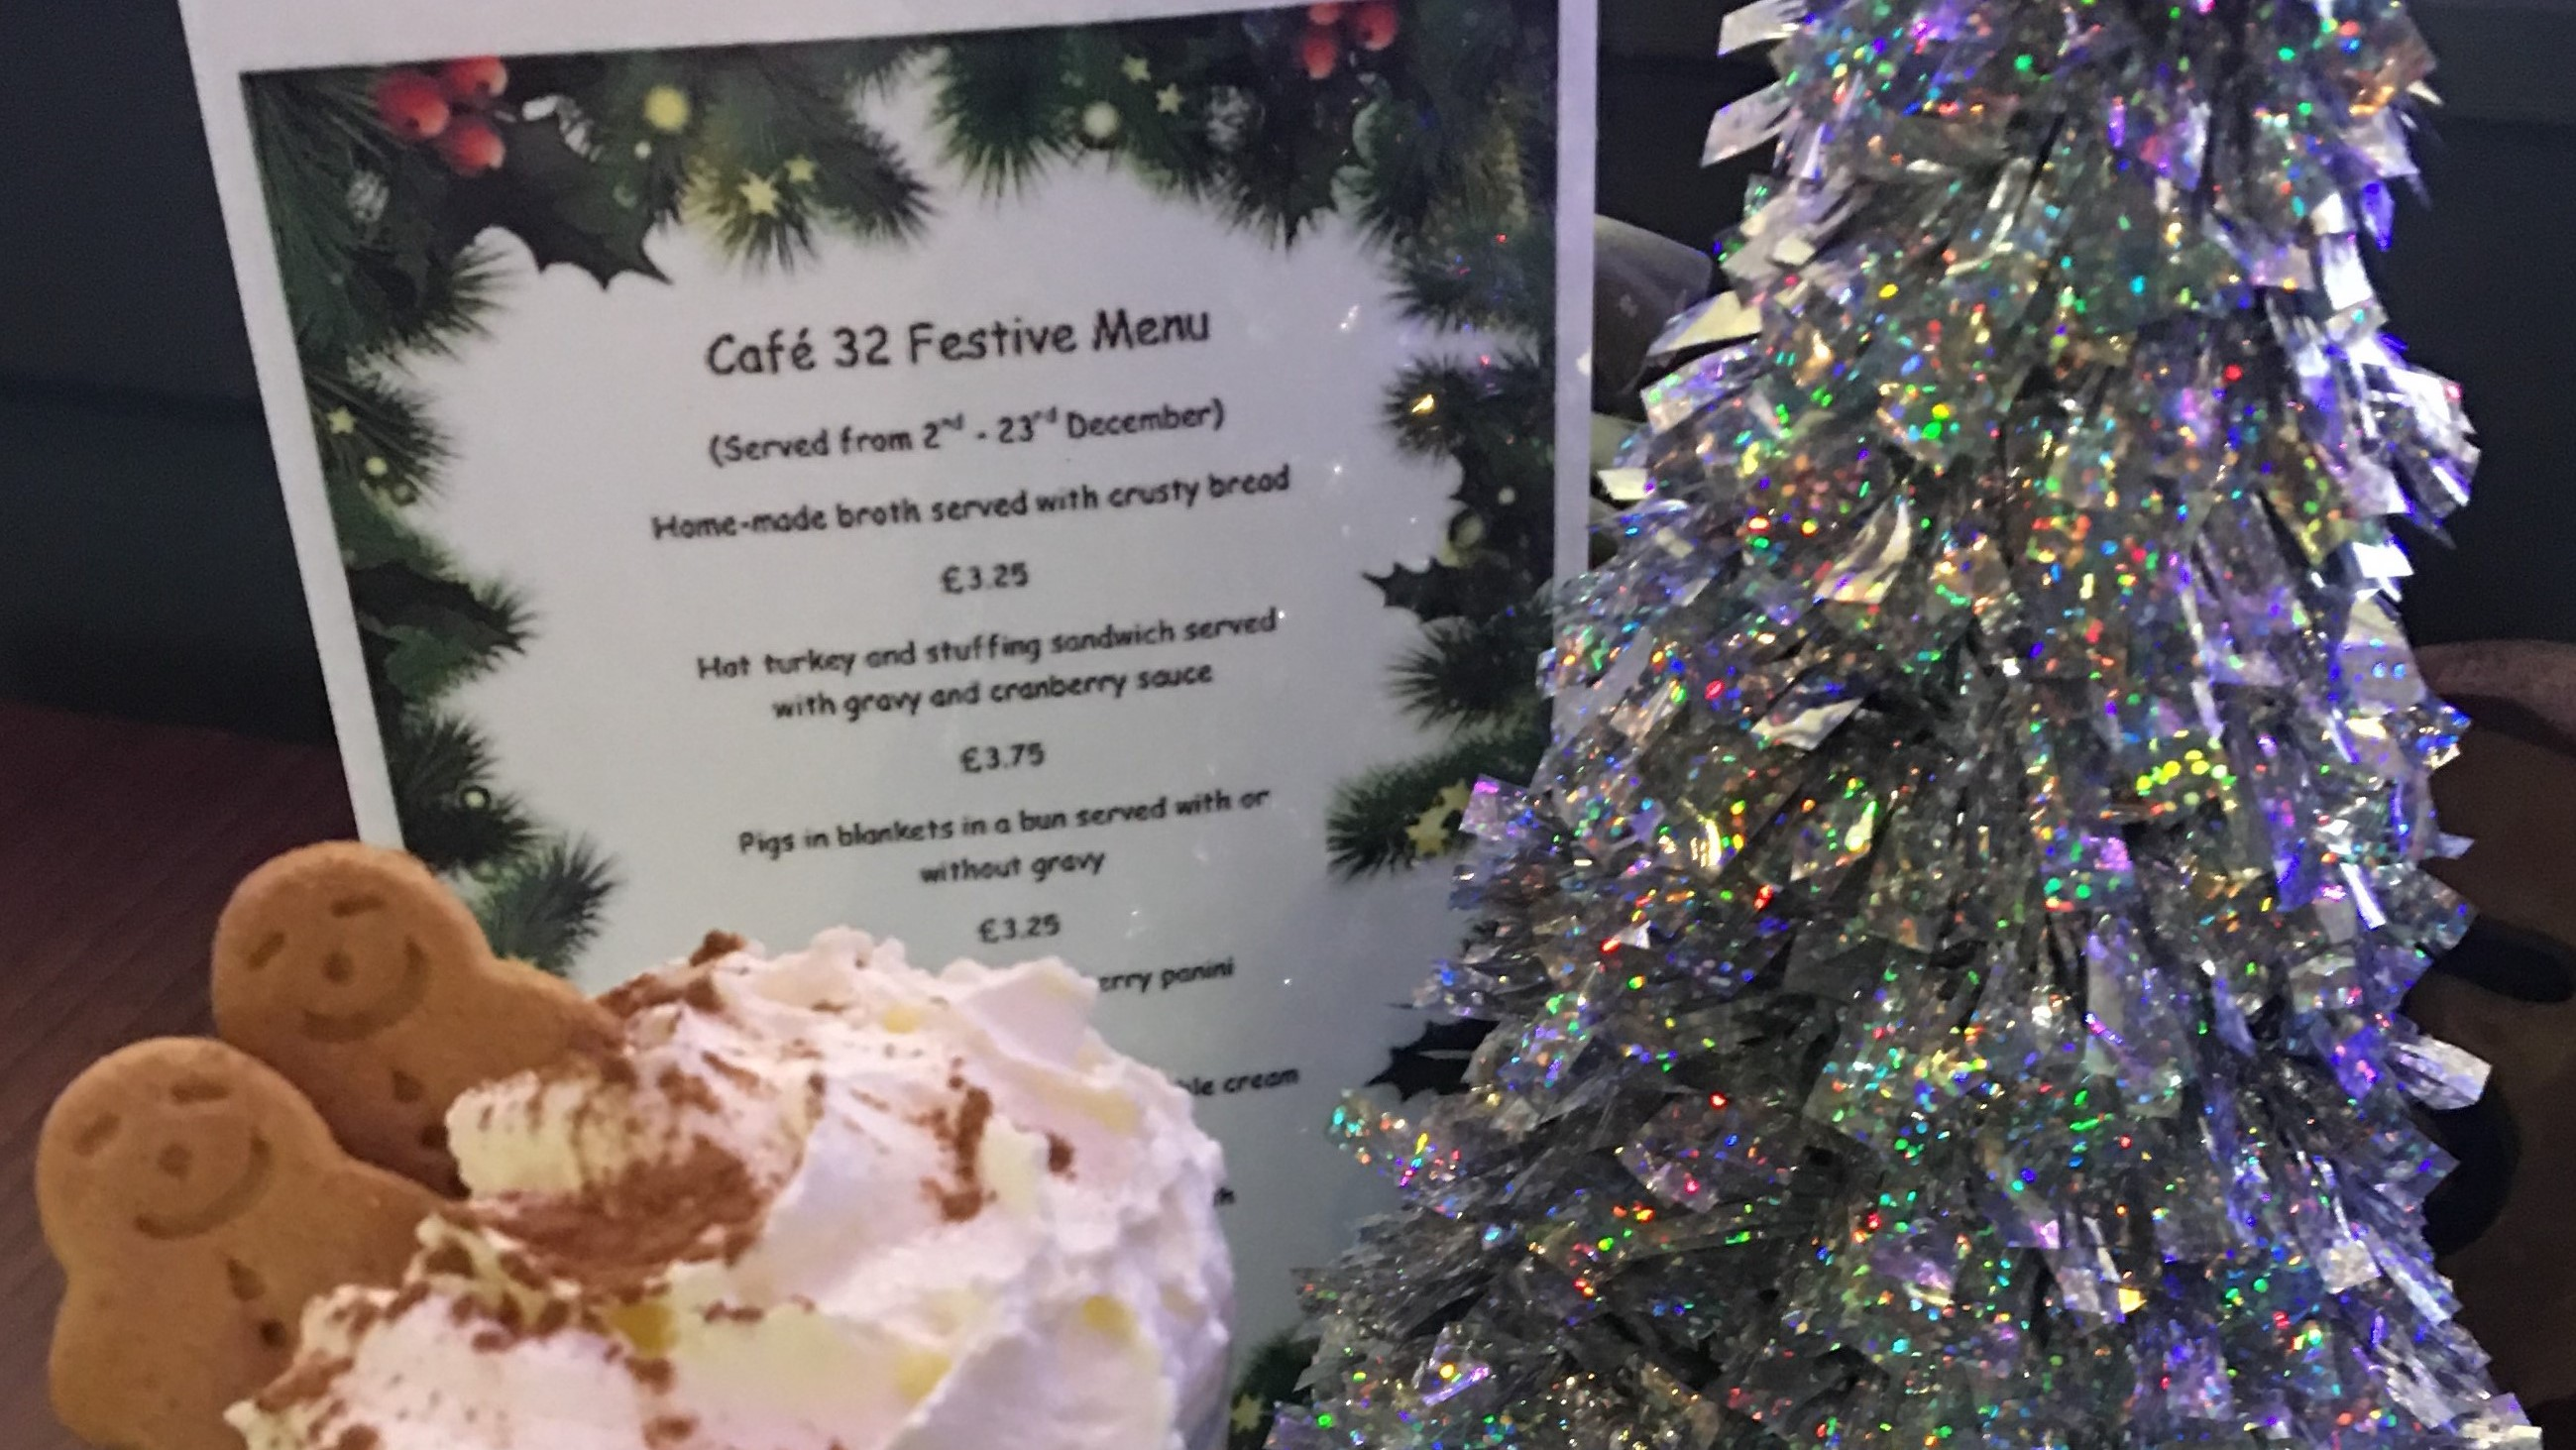 Cafe 32 launches its Festive Menu